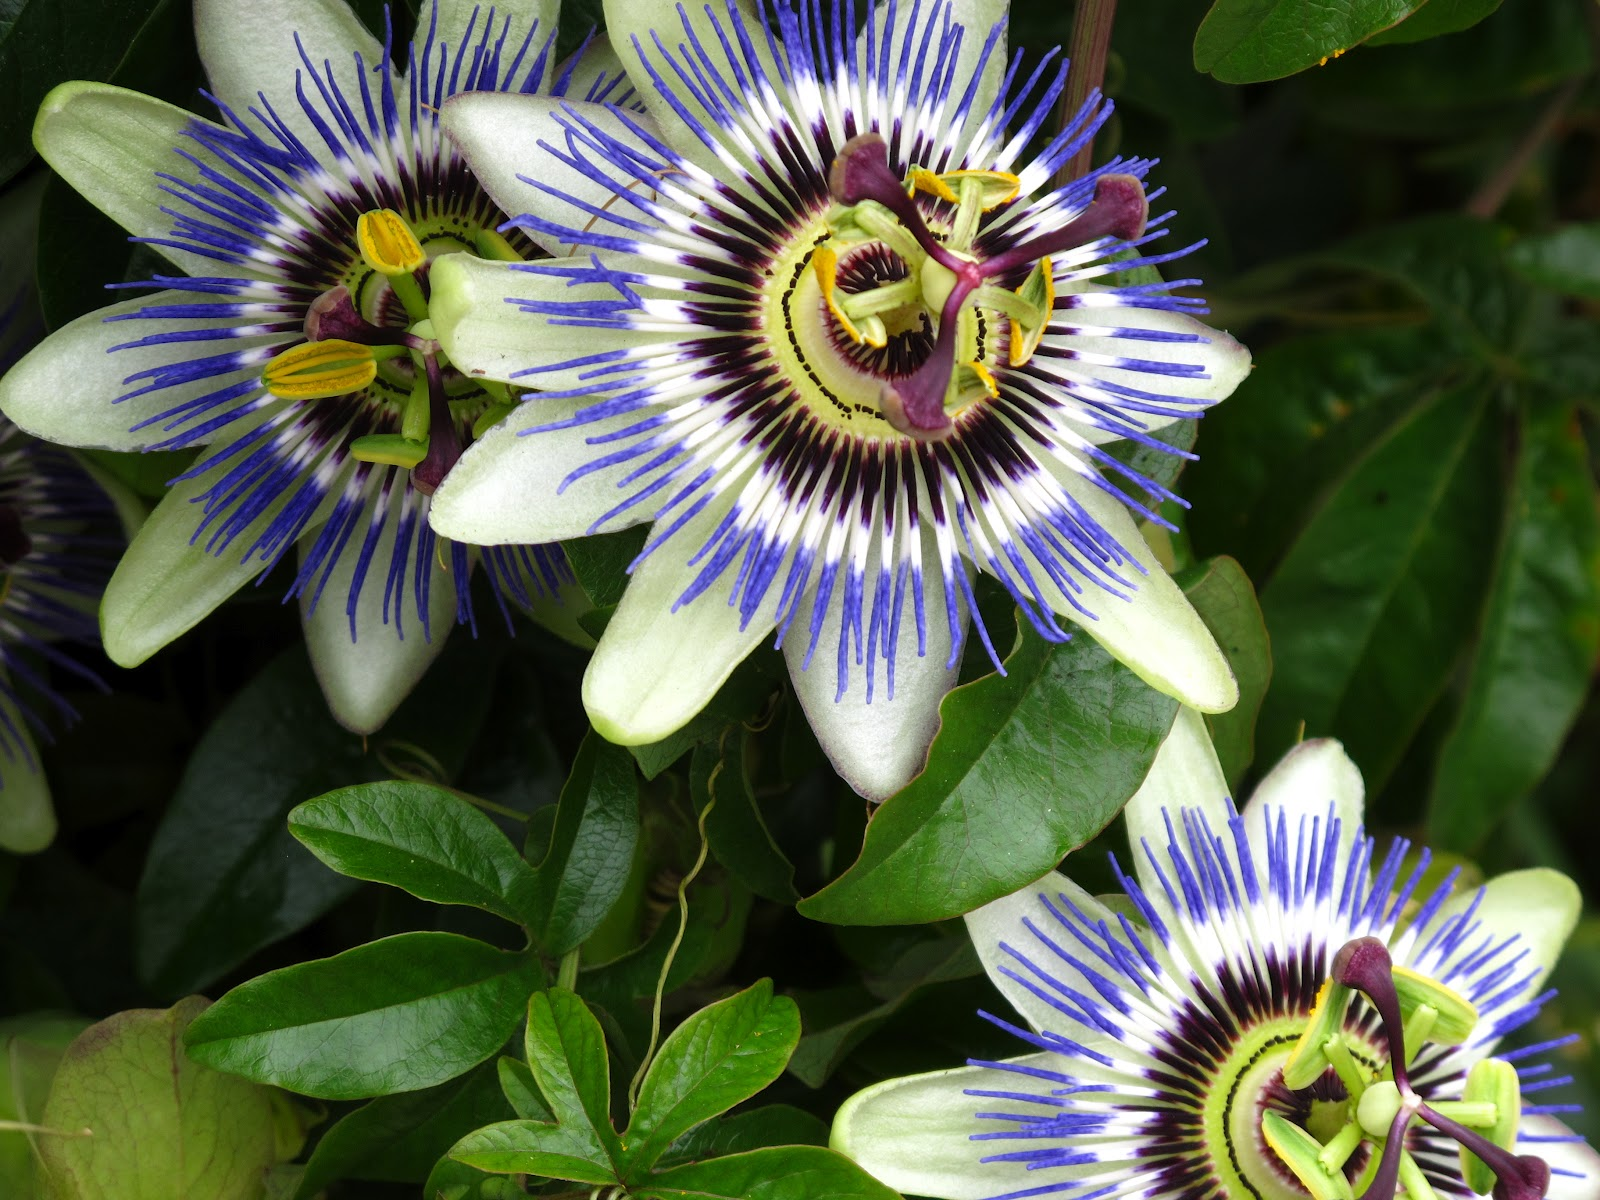 1600x1200 - Passion Flower Wallpapers 10